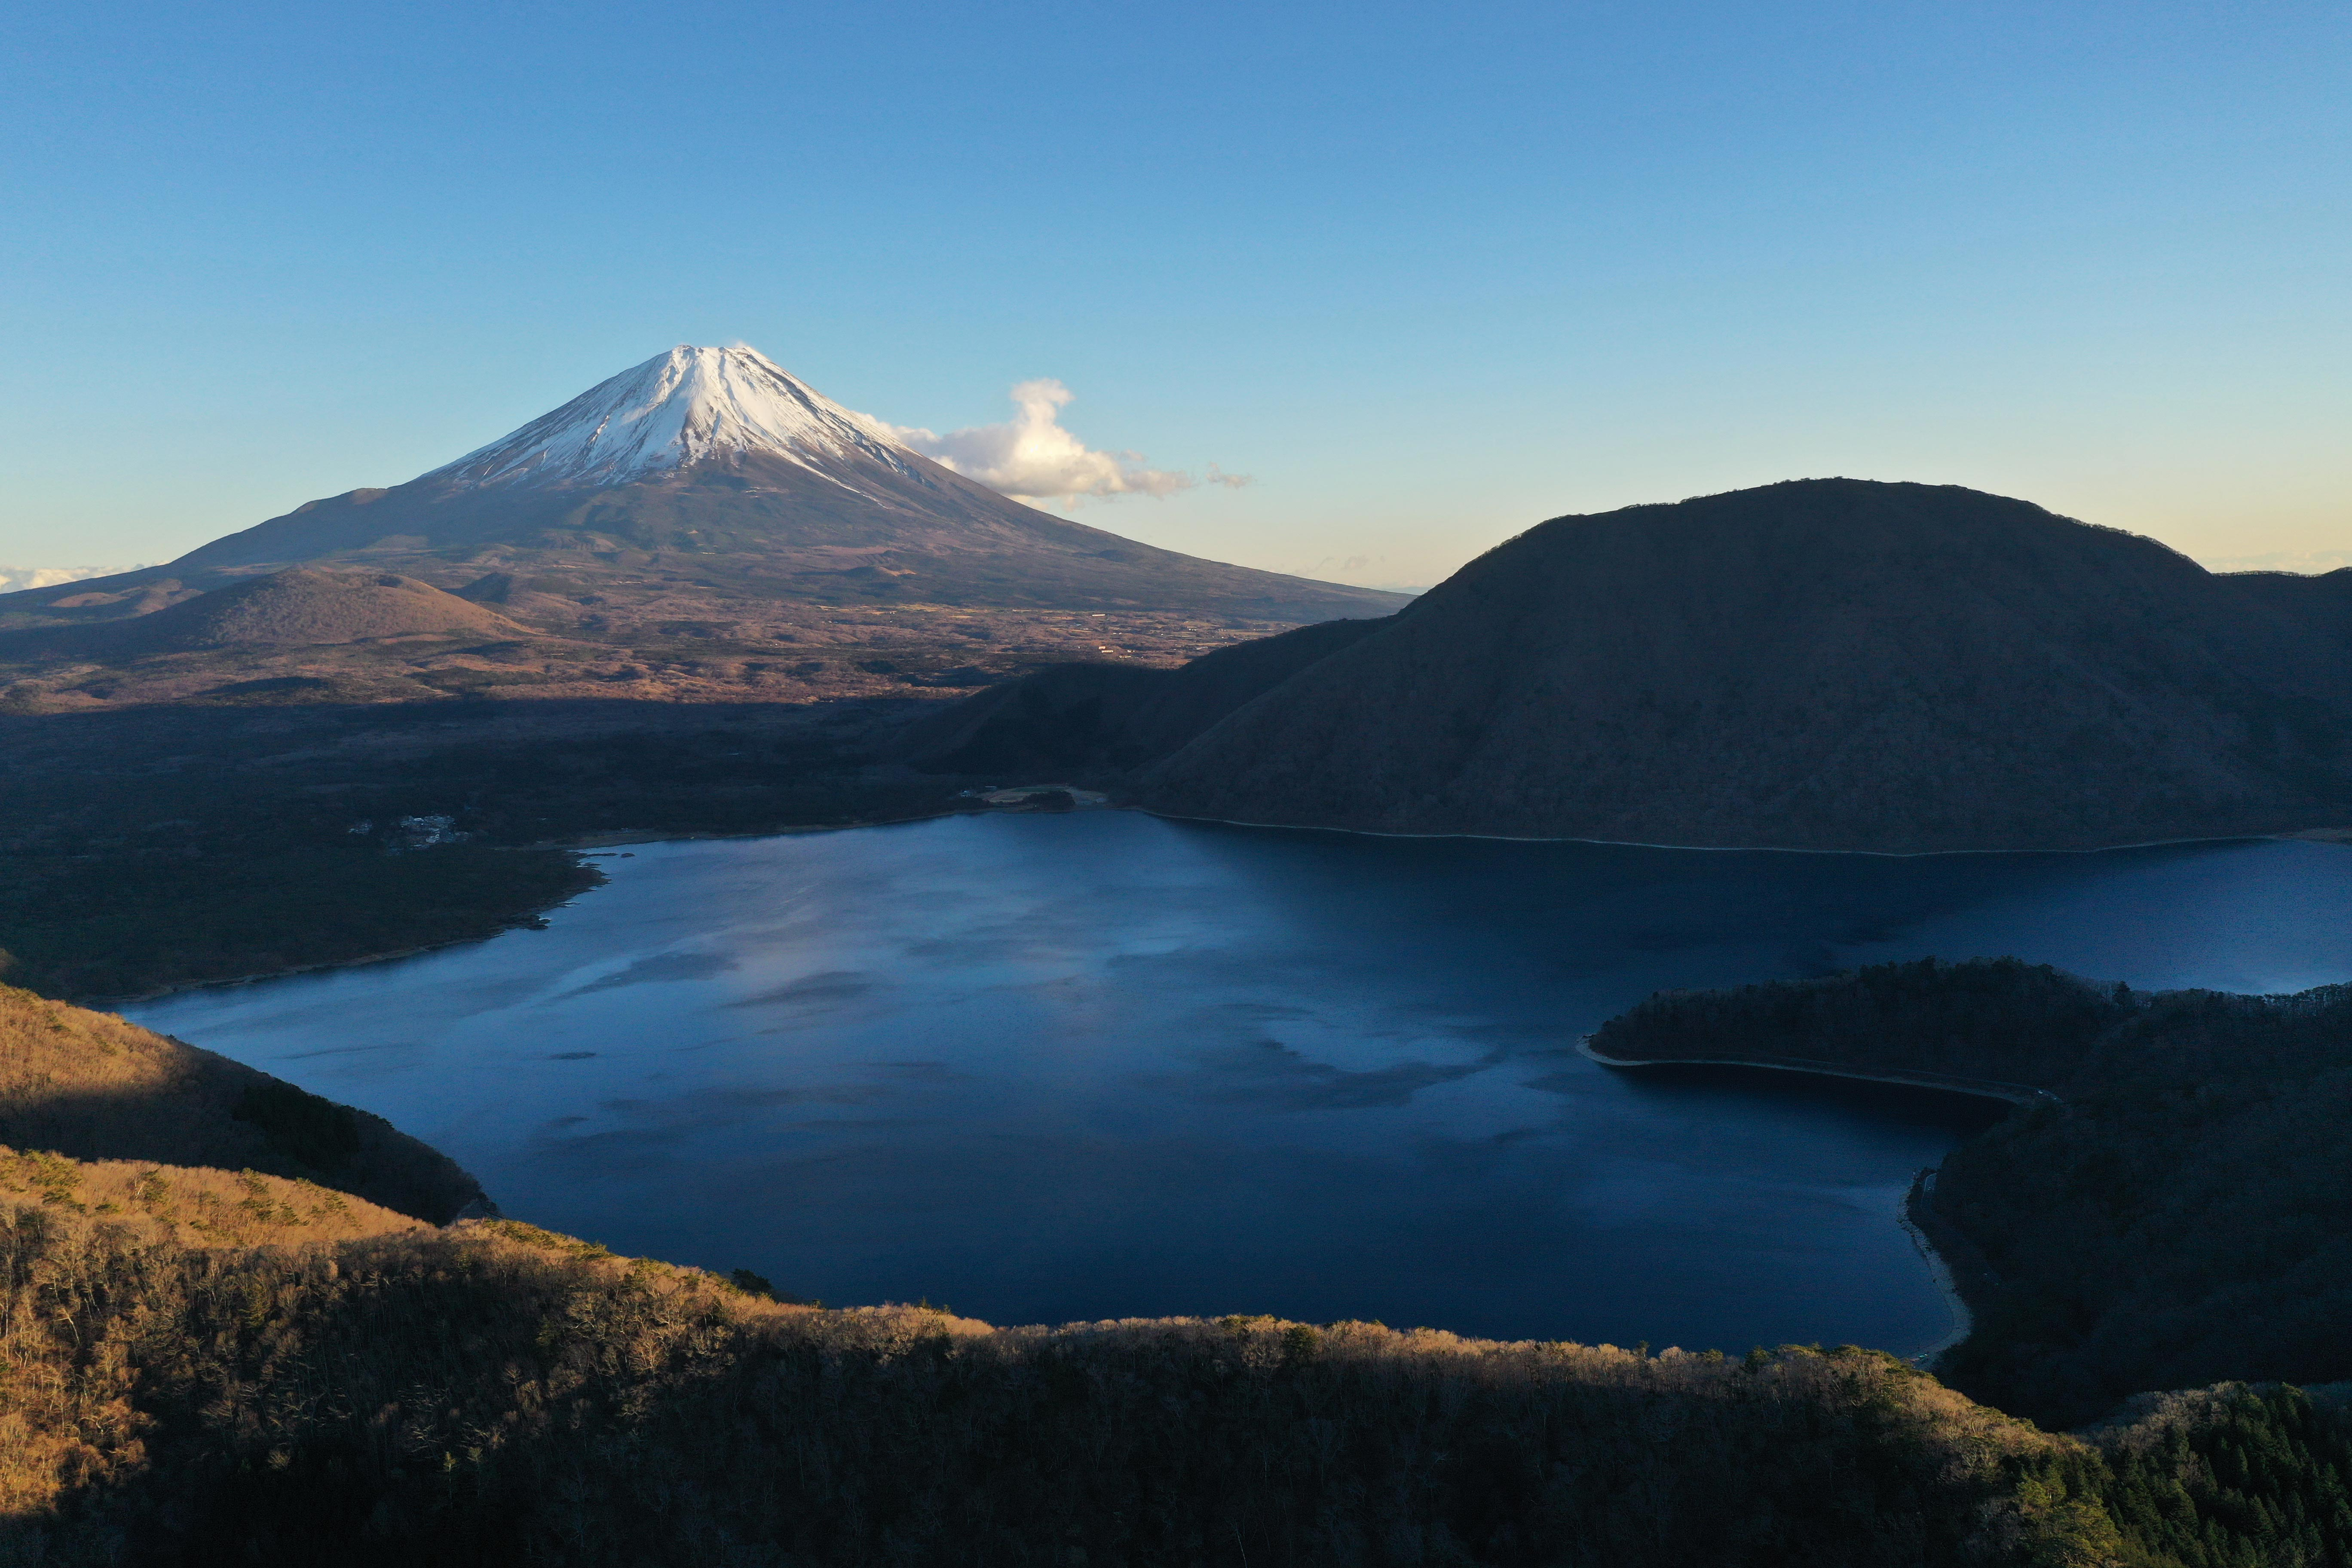 Mount_Fuji_Japan_with_Snow,_Lakes_and_Su